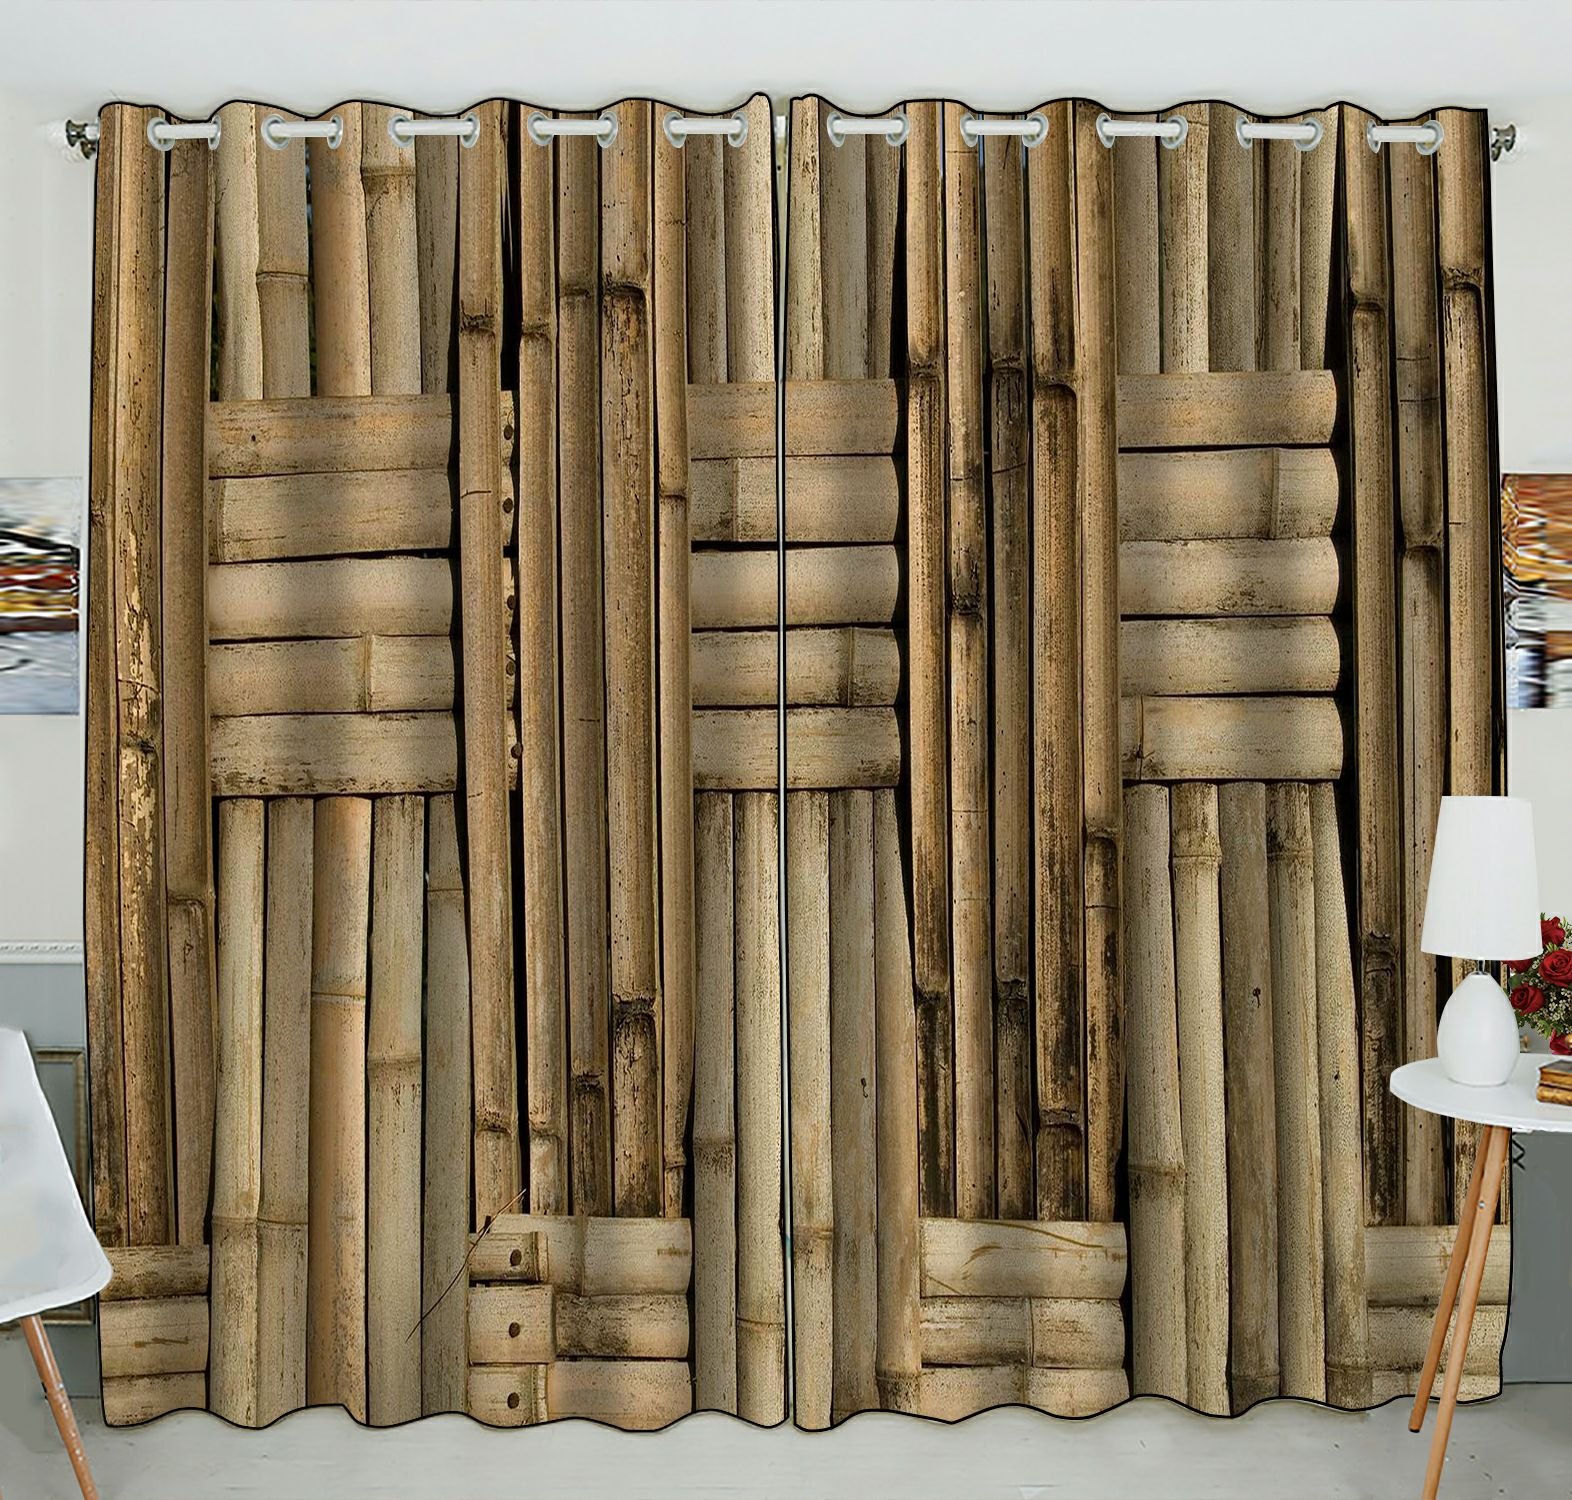 zkgk nature bamboo wall window curtain drapery panels treatment for living room bedroom kids rooms 52x84 inches two panel